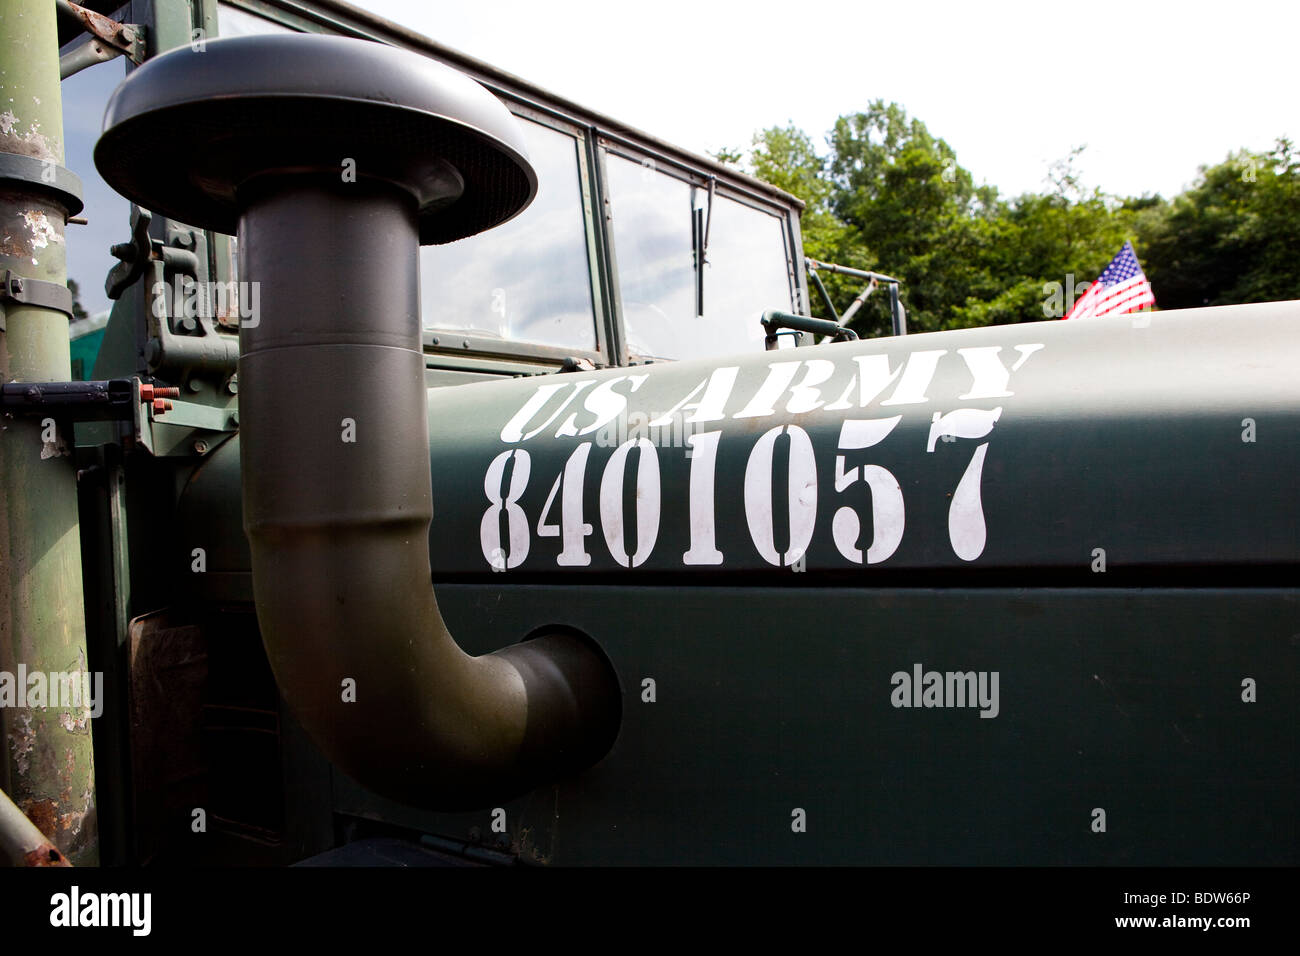 air intake and bonnet detail US Army truck - Stock Image